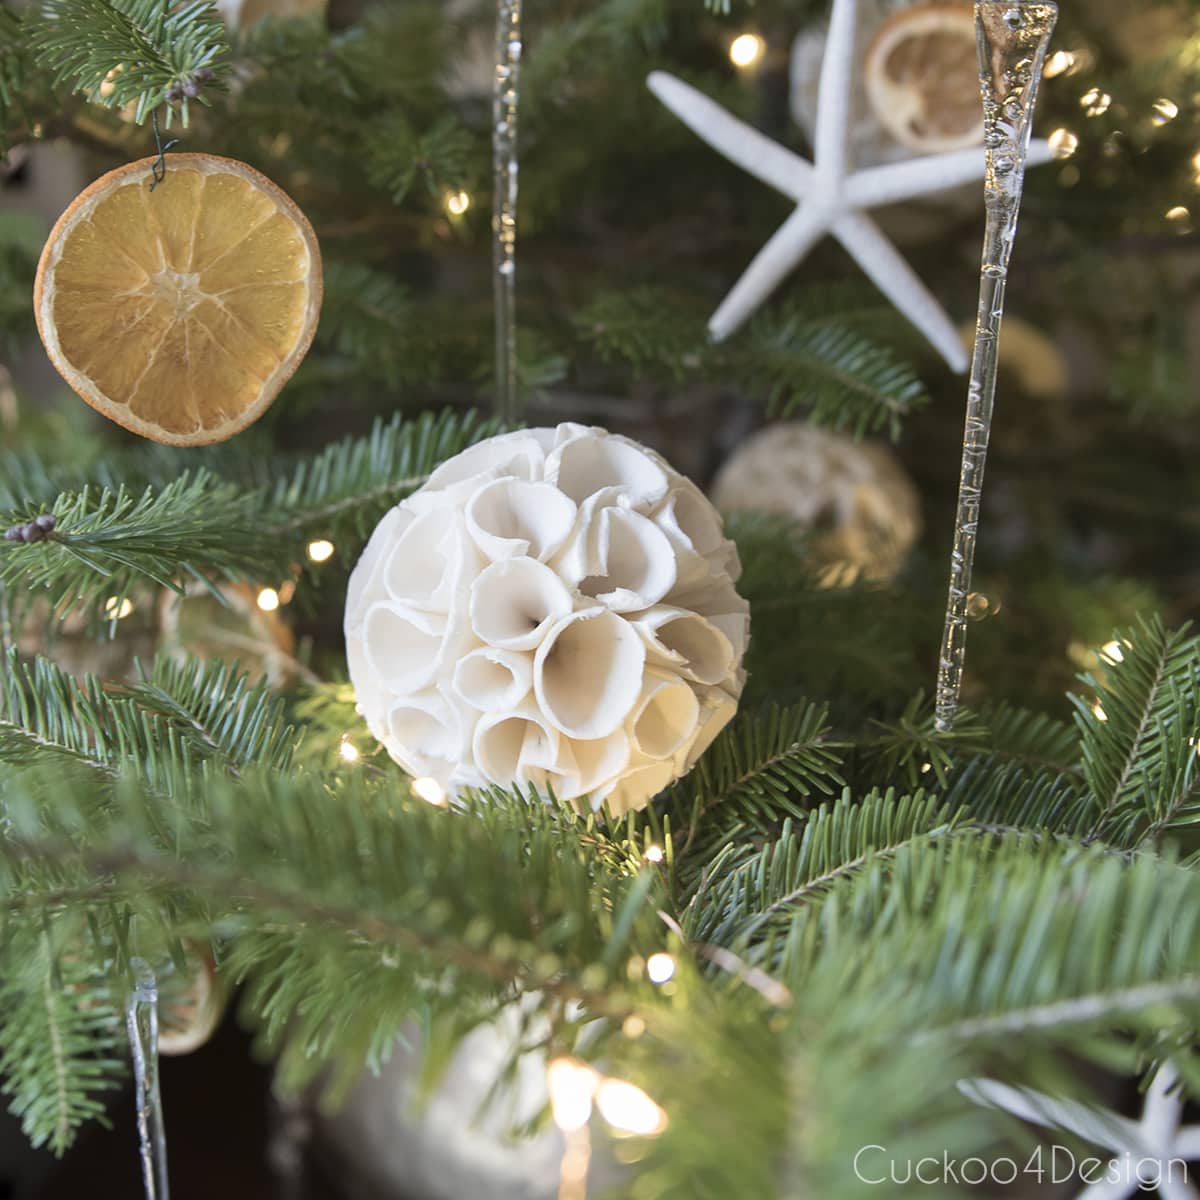 using natural paper sphere vase fillers as Christmas ornaments